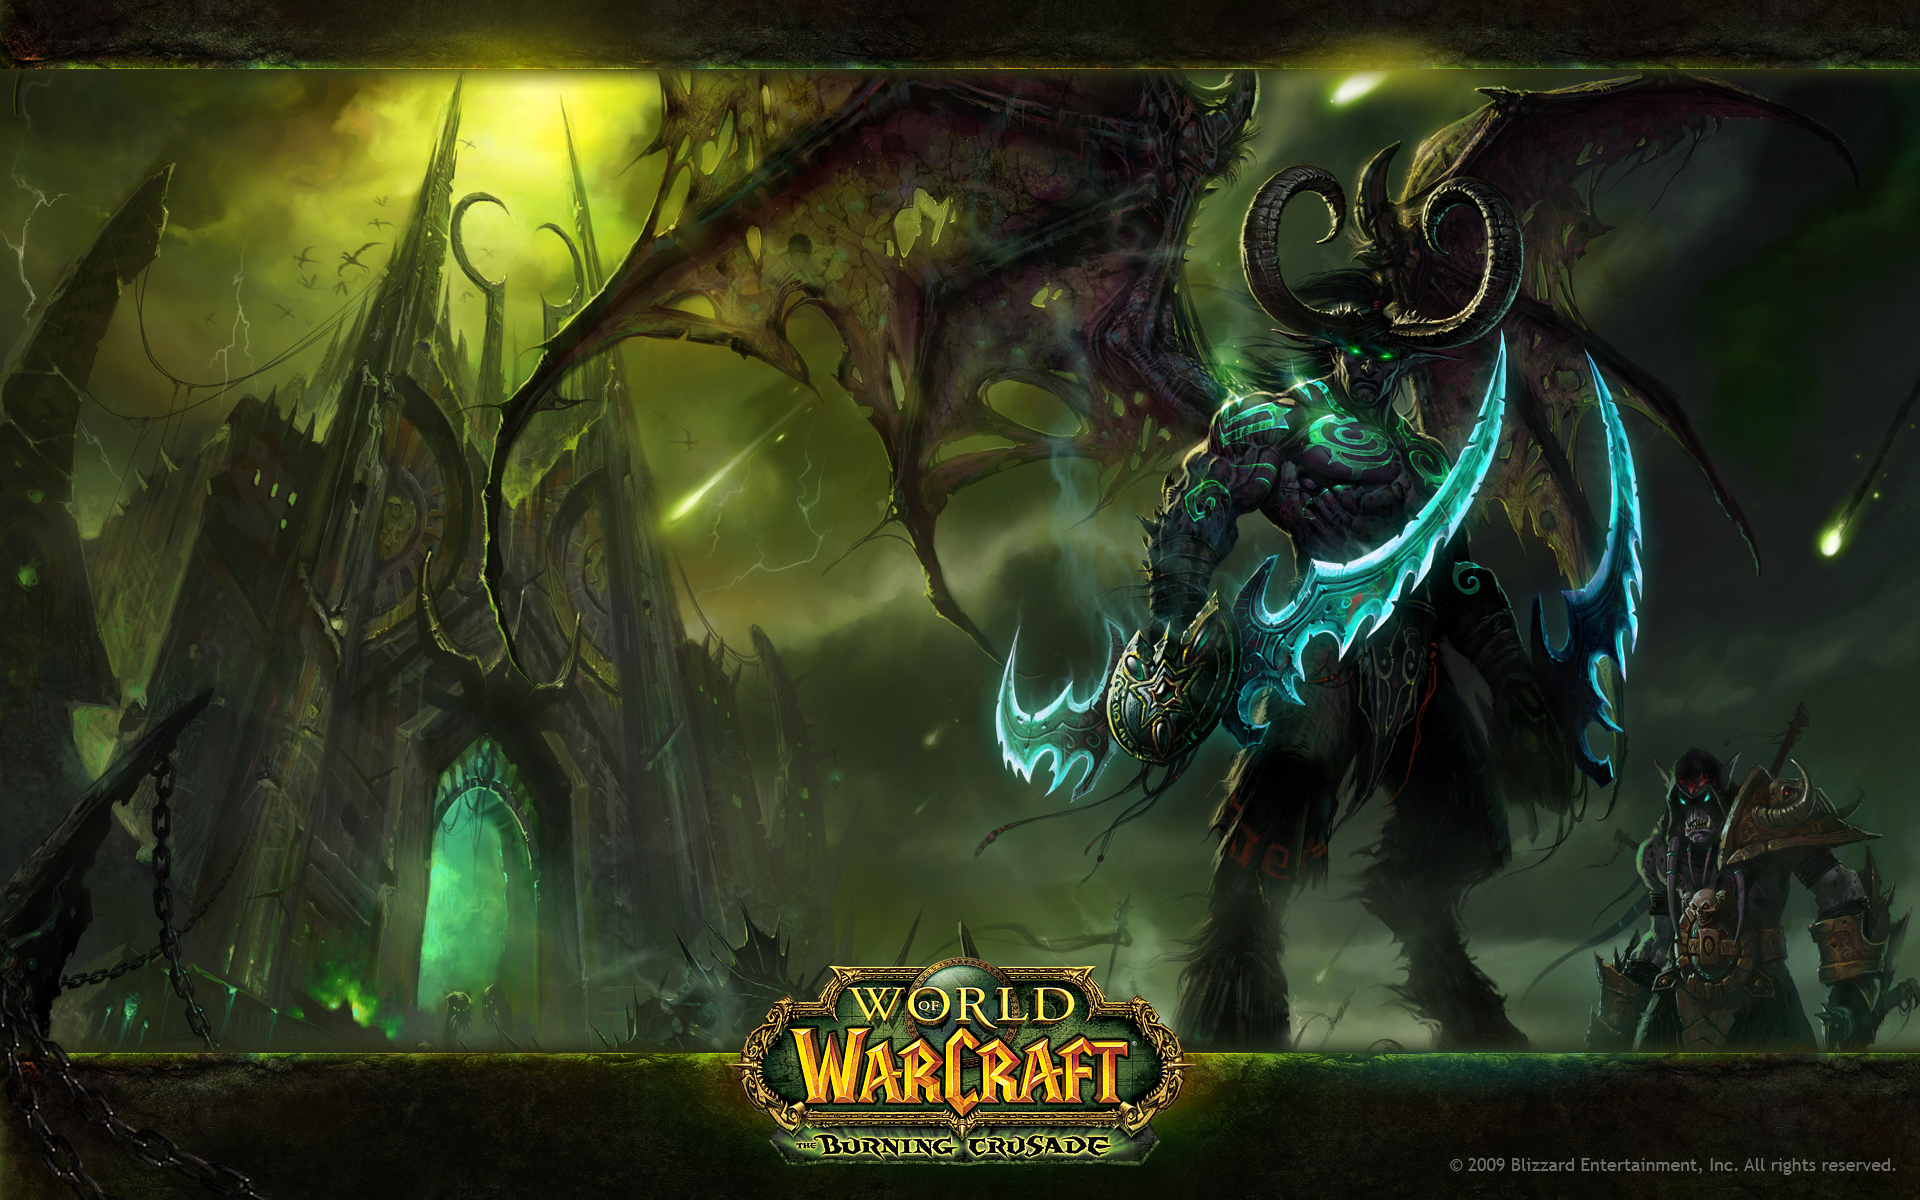 Blizzard EntertainmentWorld of Warcraft The Burning Crusade 1920x1200